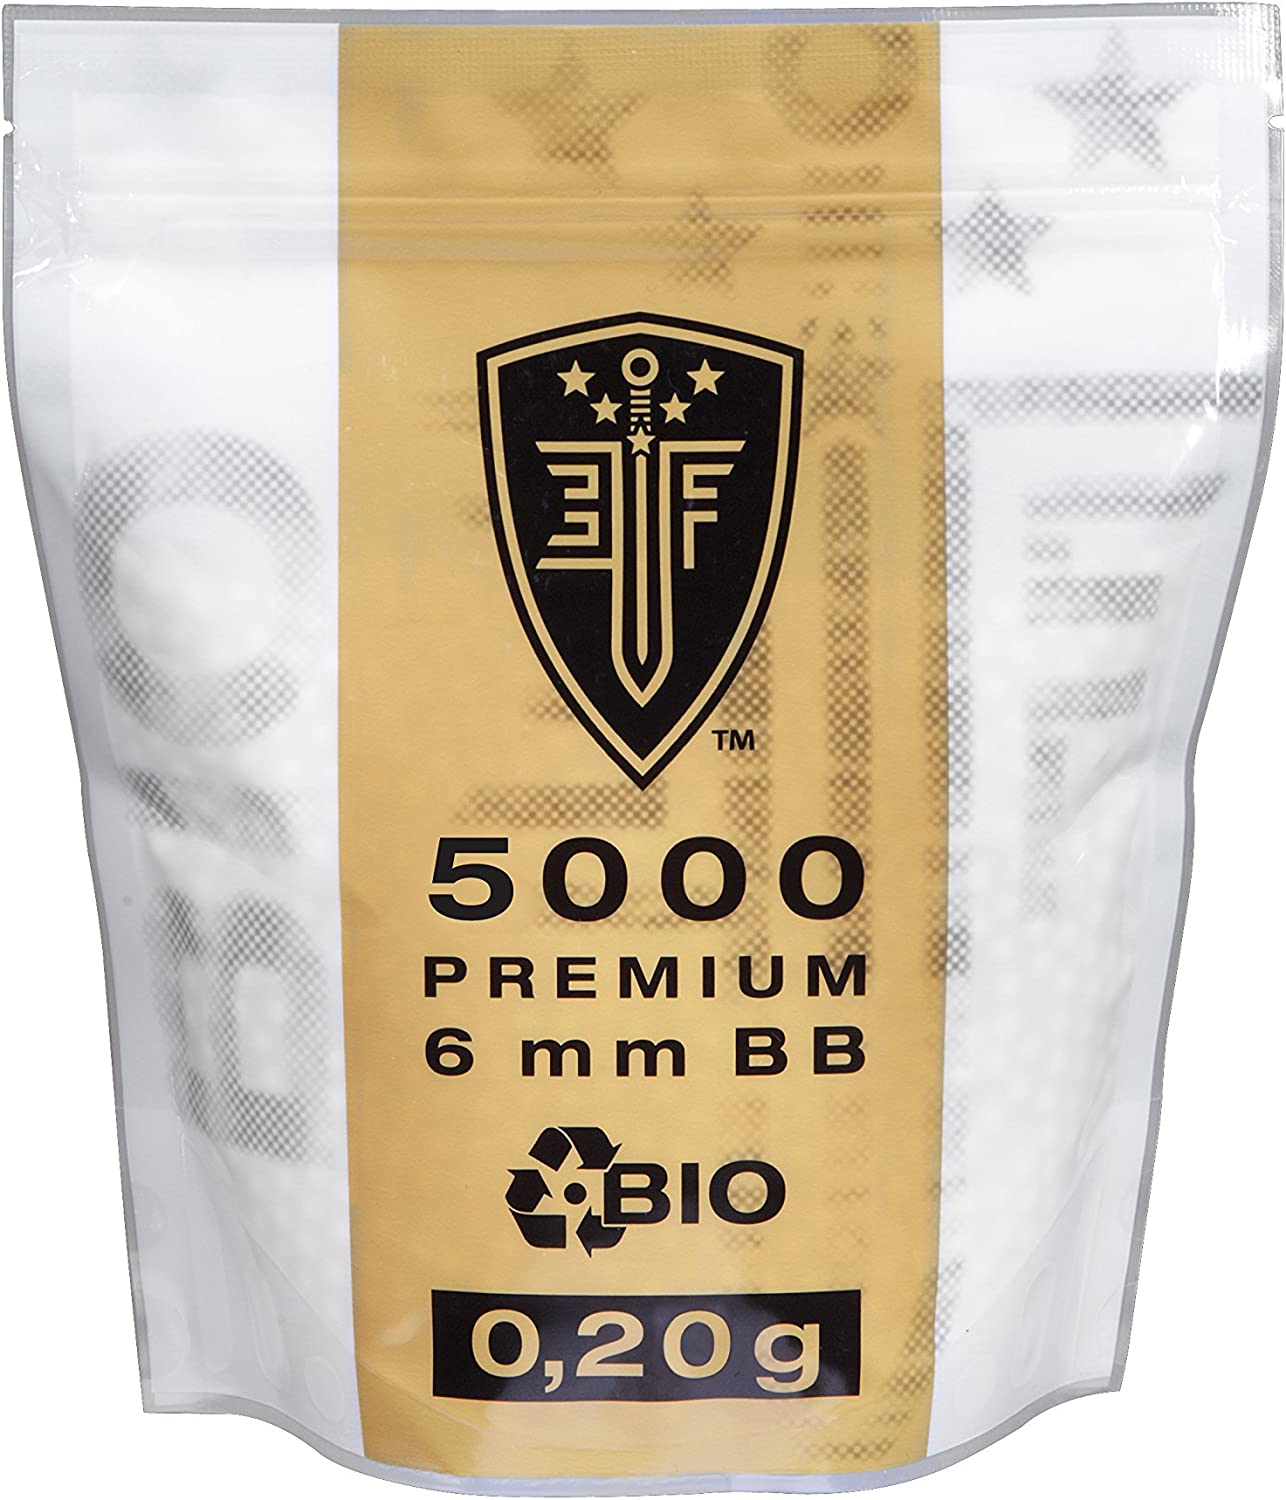 Elite Force Premium bio BB Airsoft color blanco 6 mm, 0,20 g, 5000 BBS